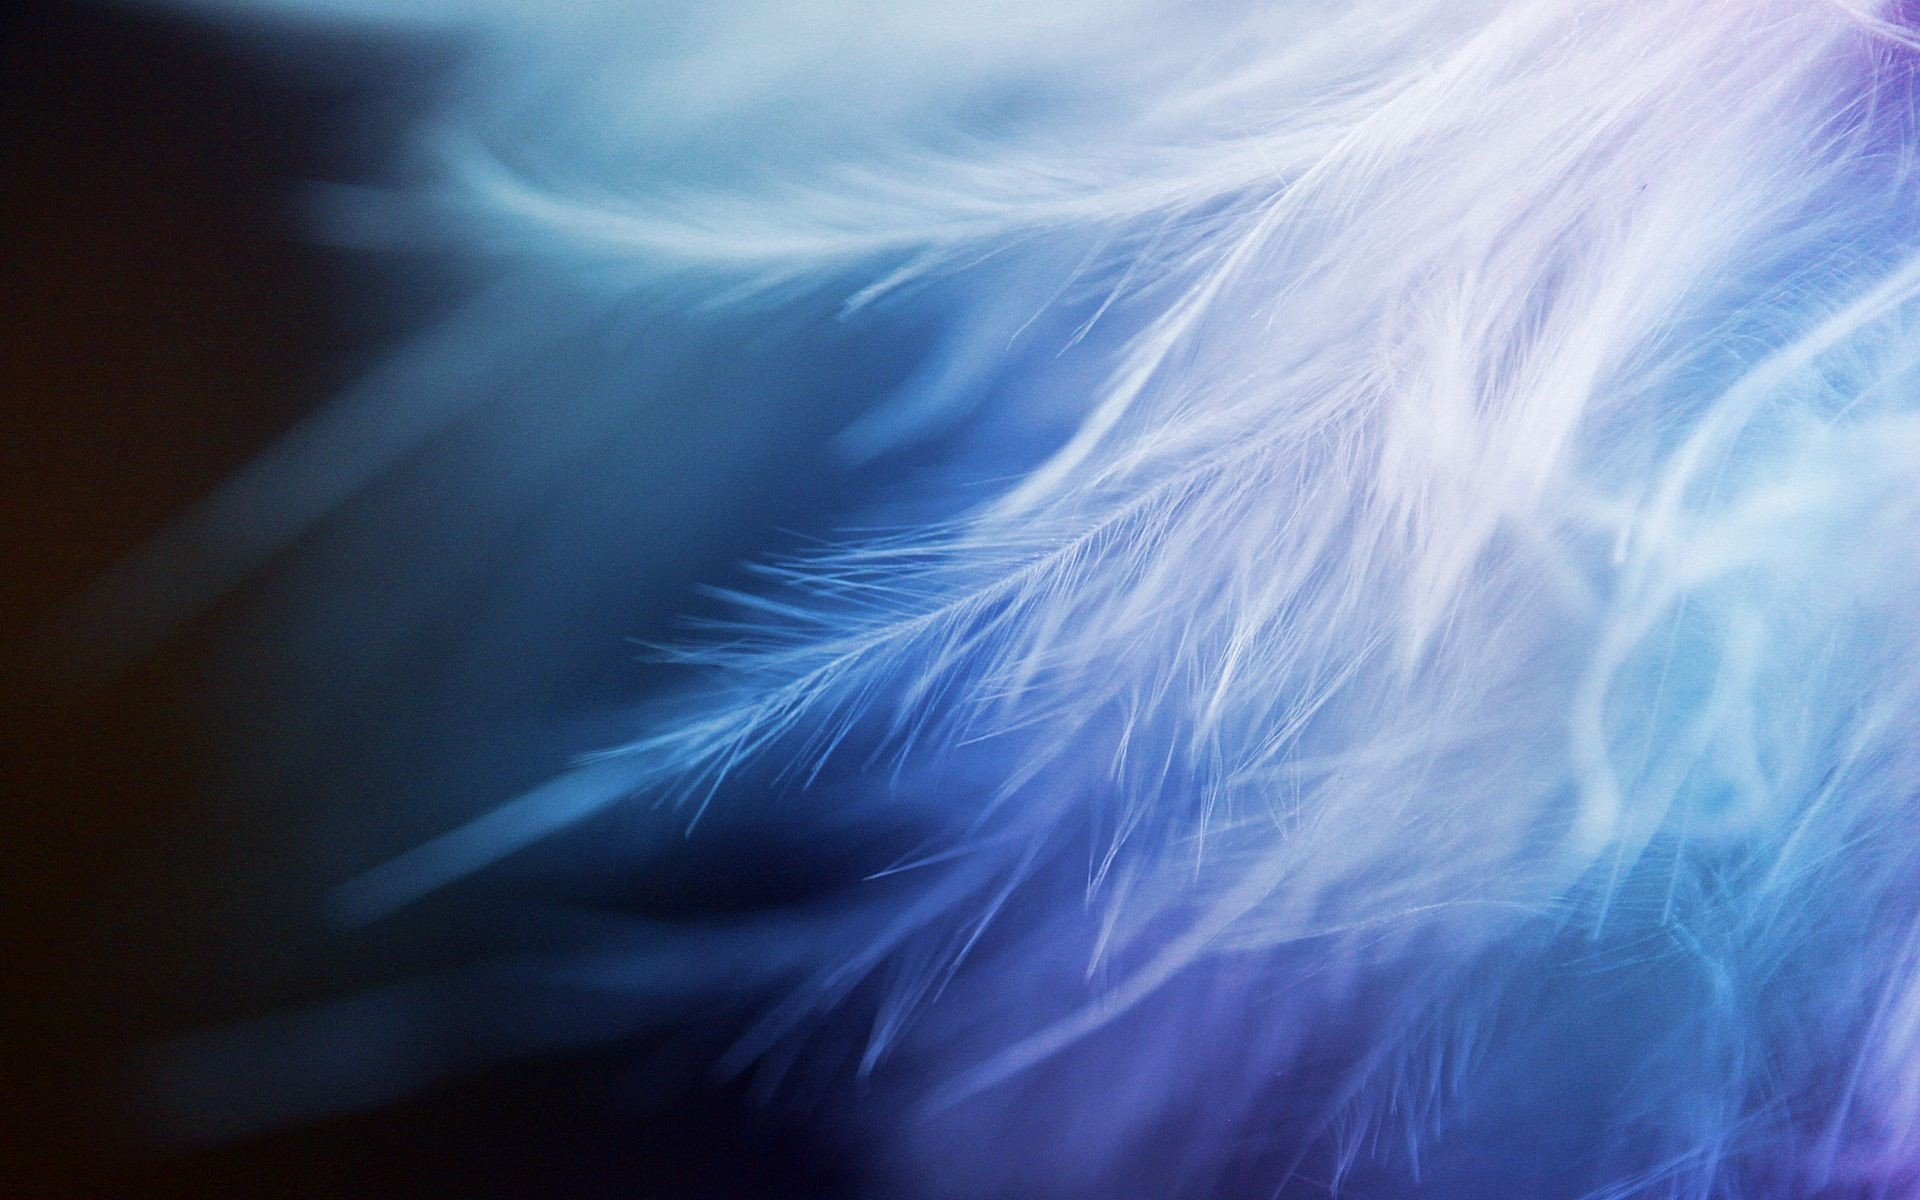 White Feather Closeup Wallpaper 1920x1200 726850 HD Wallpapers Download Free Images Wallpaper [1000image.com]